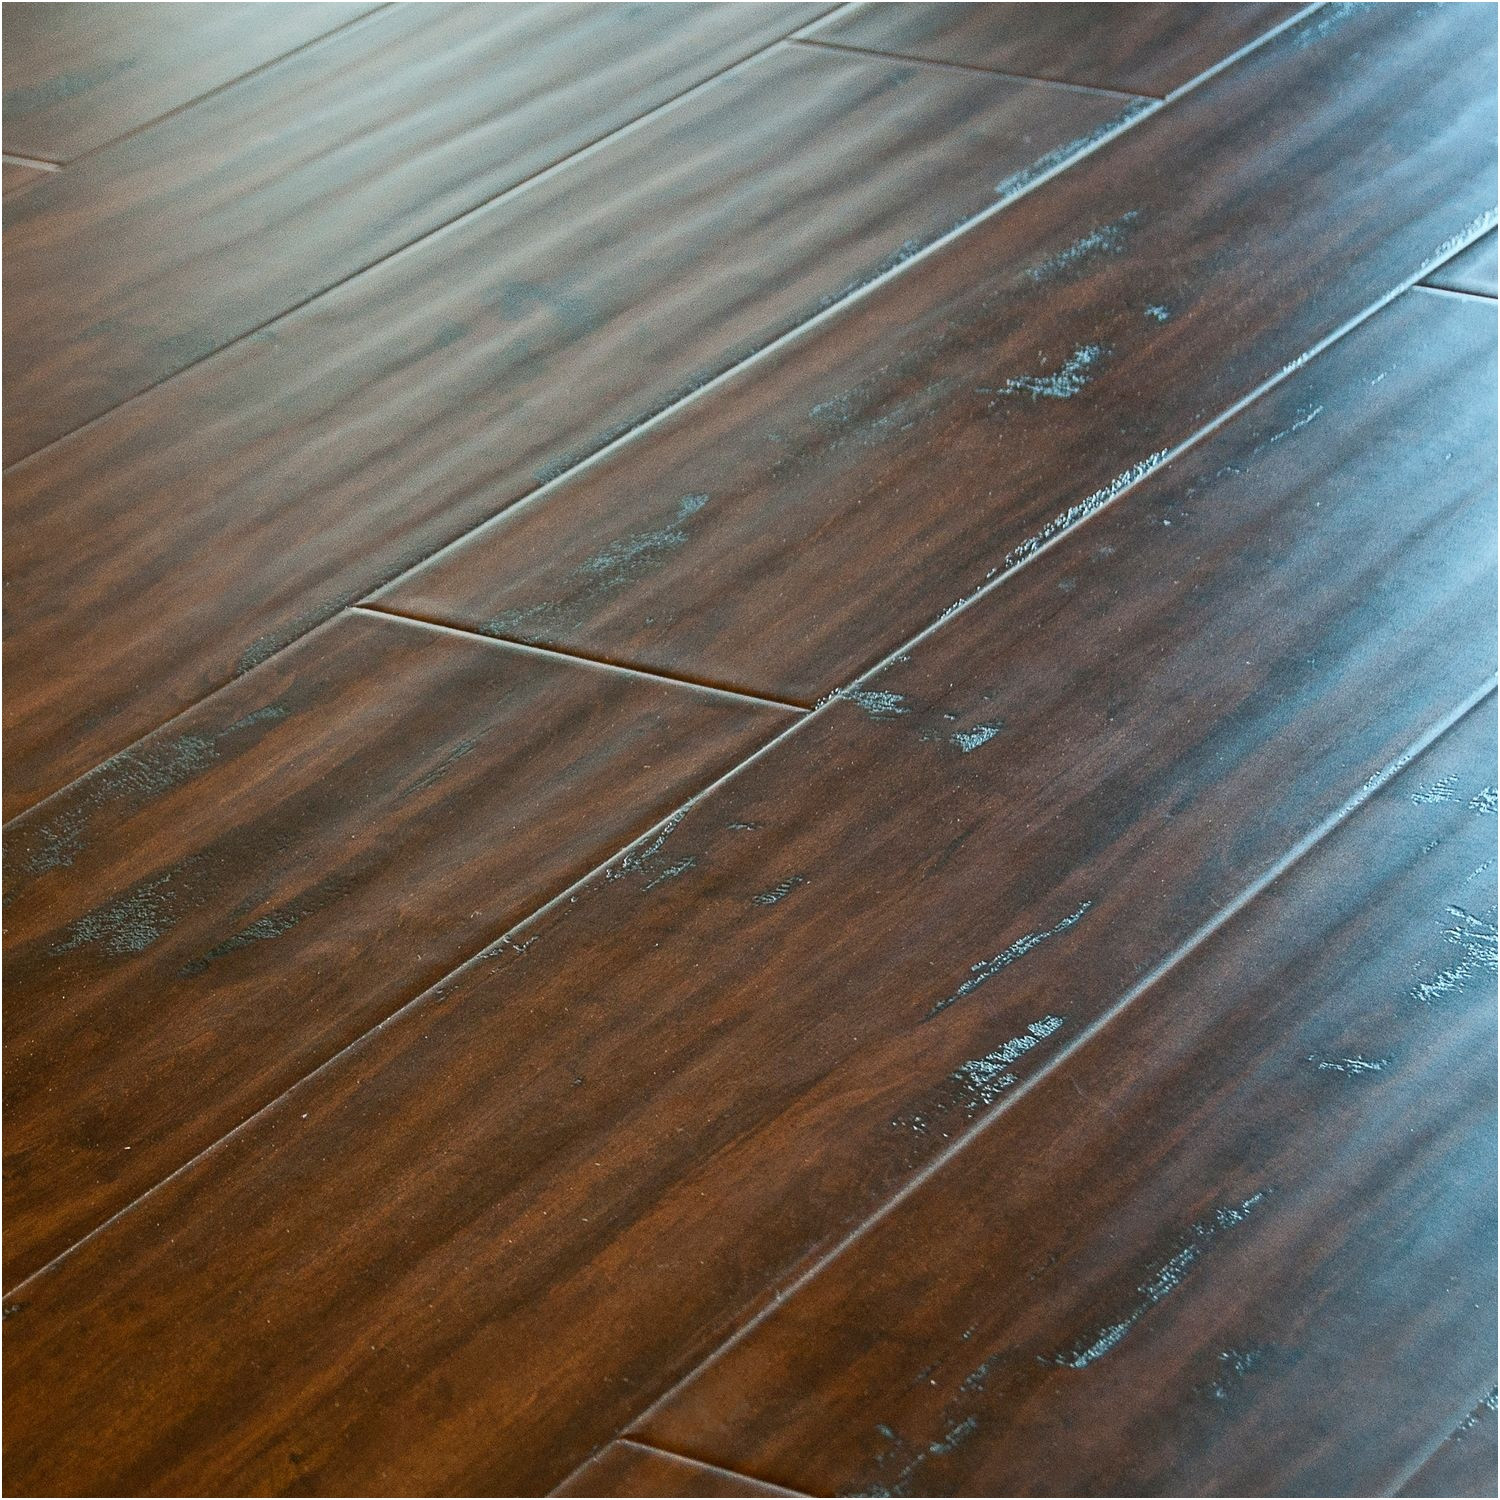 costco hardwood flooring reviews of costco laminate wood flooring review best of select surfaces inside costco laminate wood flooring review best of select surfaces laminate flooring reviews acai sofa